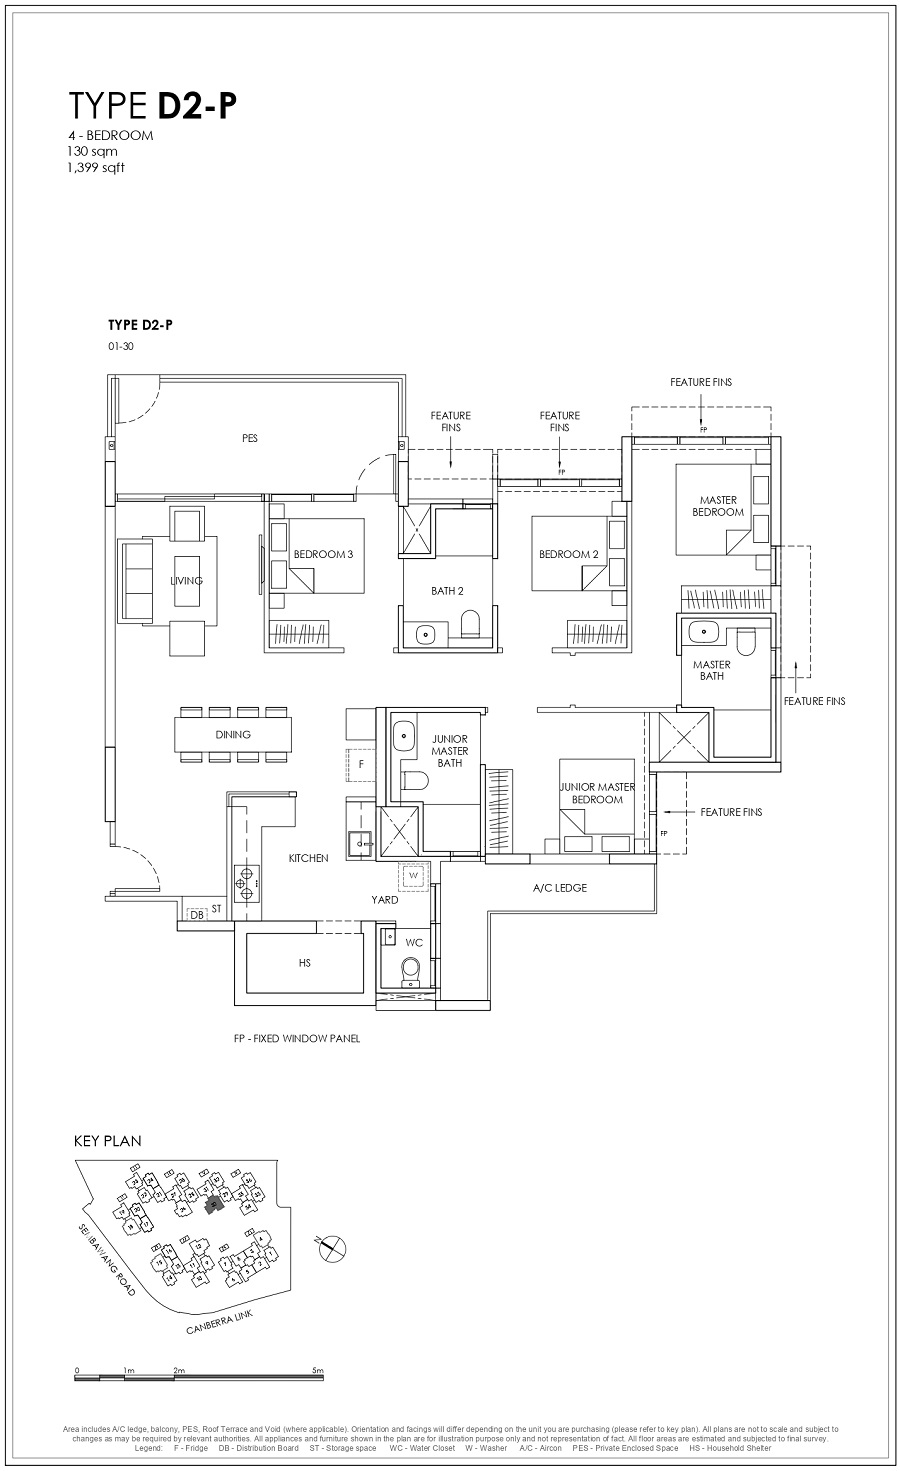 Provence Residence EC 4BR Type D2-P 130_1399